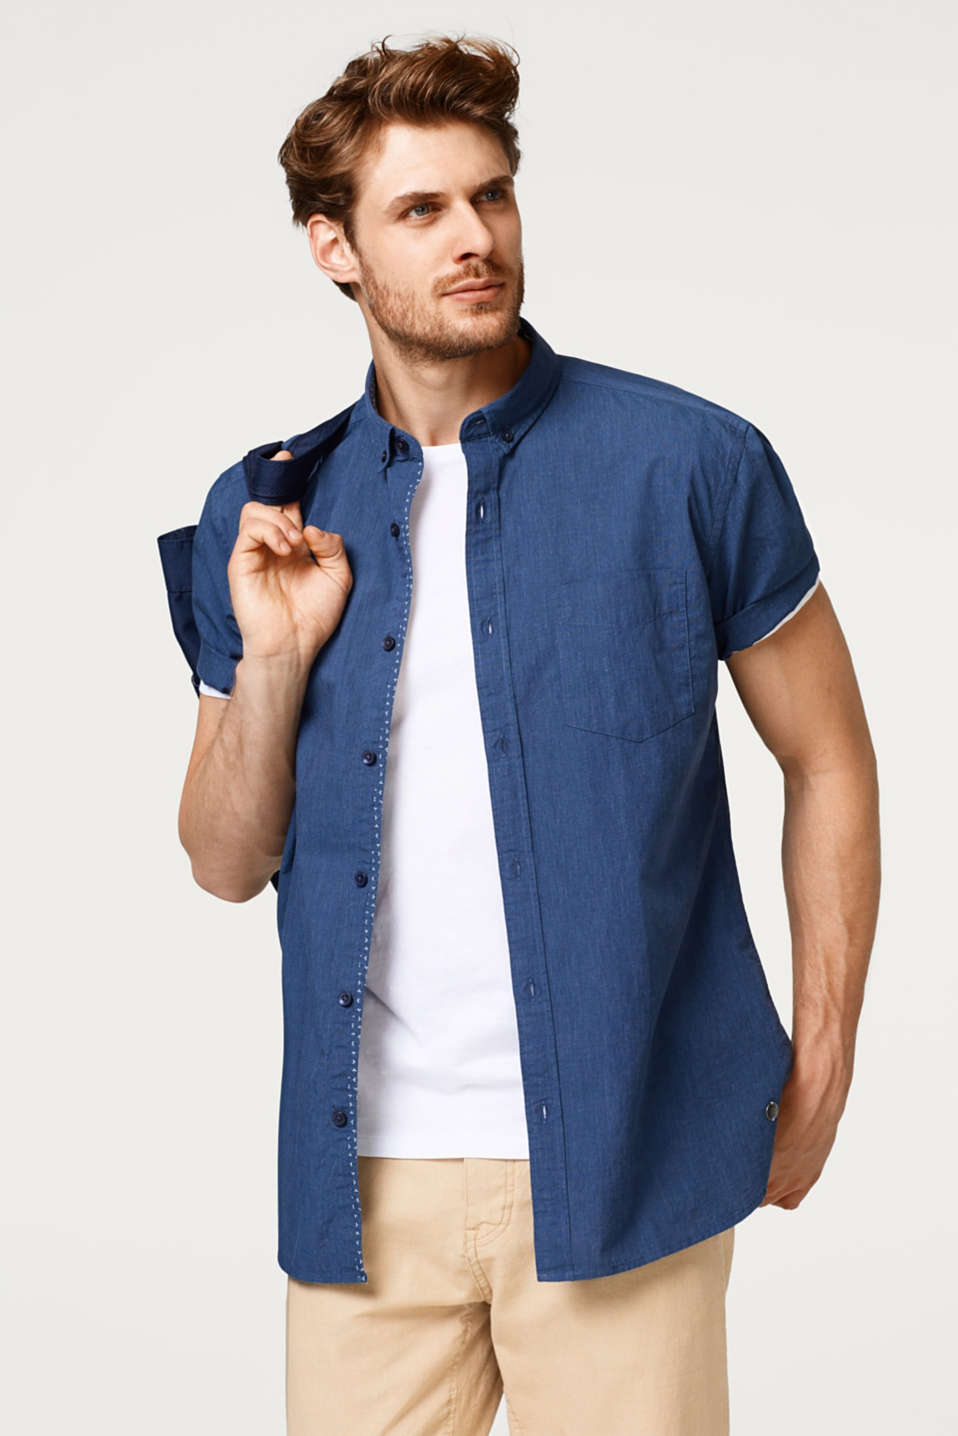 Esprit - Short sleeve cotton shirt with a button-down collar